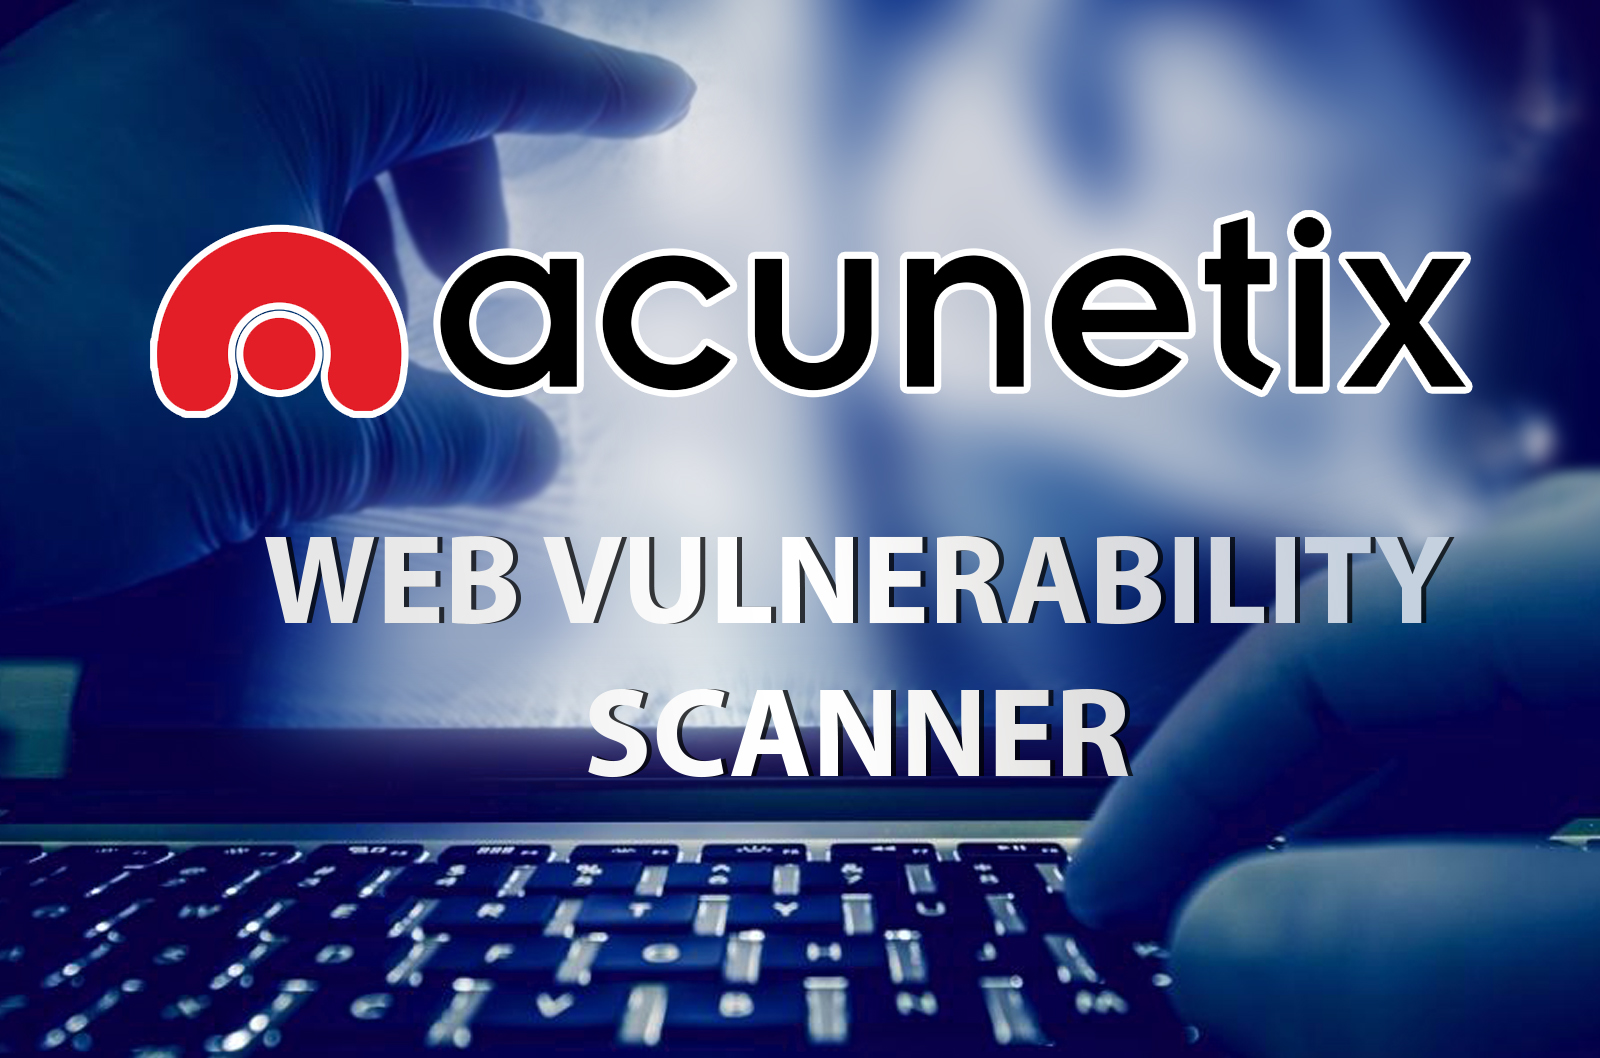 Acunetix - Web Vulnerability Scanner For Hackers